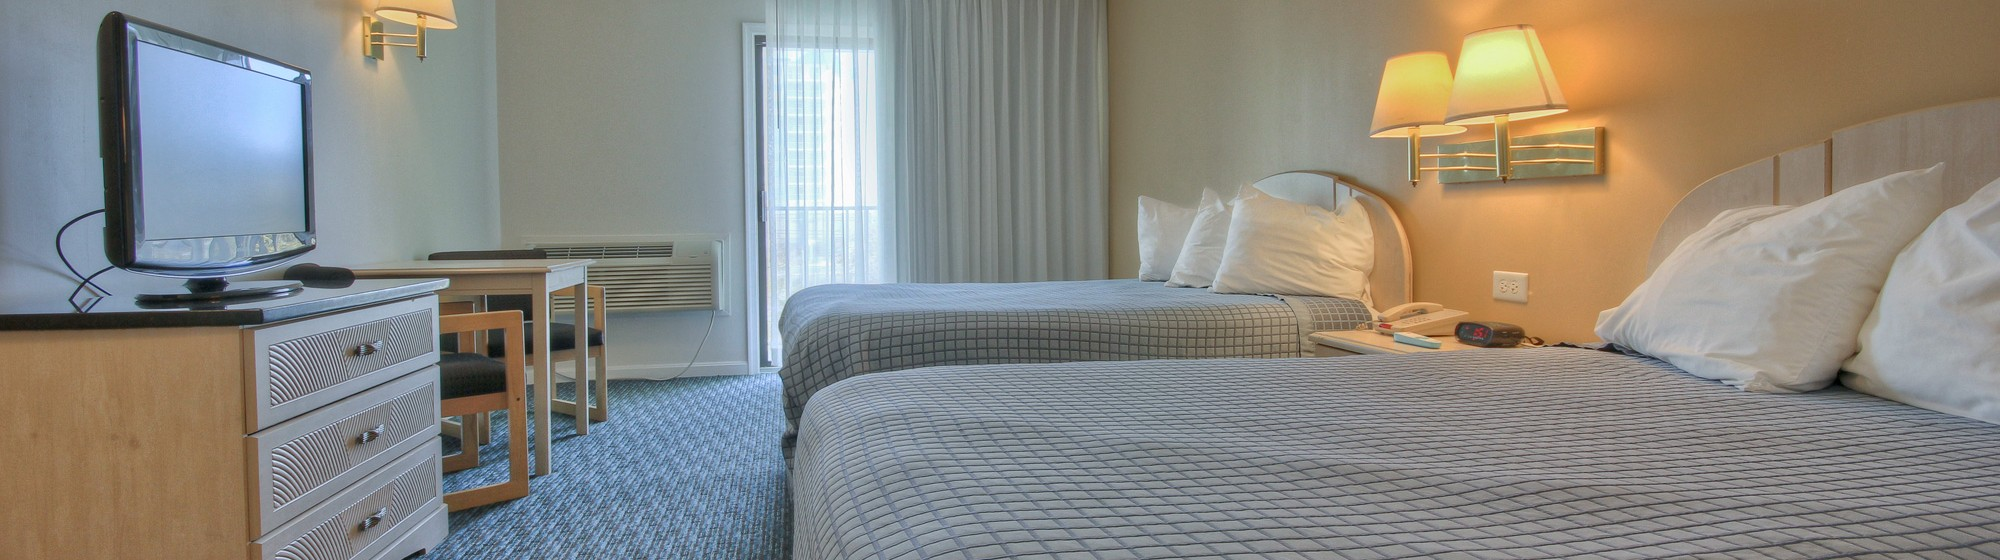 Hotel Rooms Available In Ocean City Md At The Sea Bay Hotel. Morden Living Room. Black Living Room Chair. Cheap Living Room Chairs. Solid Wood Living Room Tables. Modern Window Treatment Ideas For Living Room. Paintings For Living Room. Big Living Room Mirrors. Living Spaces Dining Room